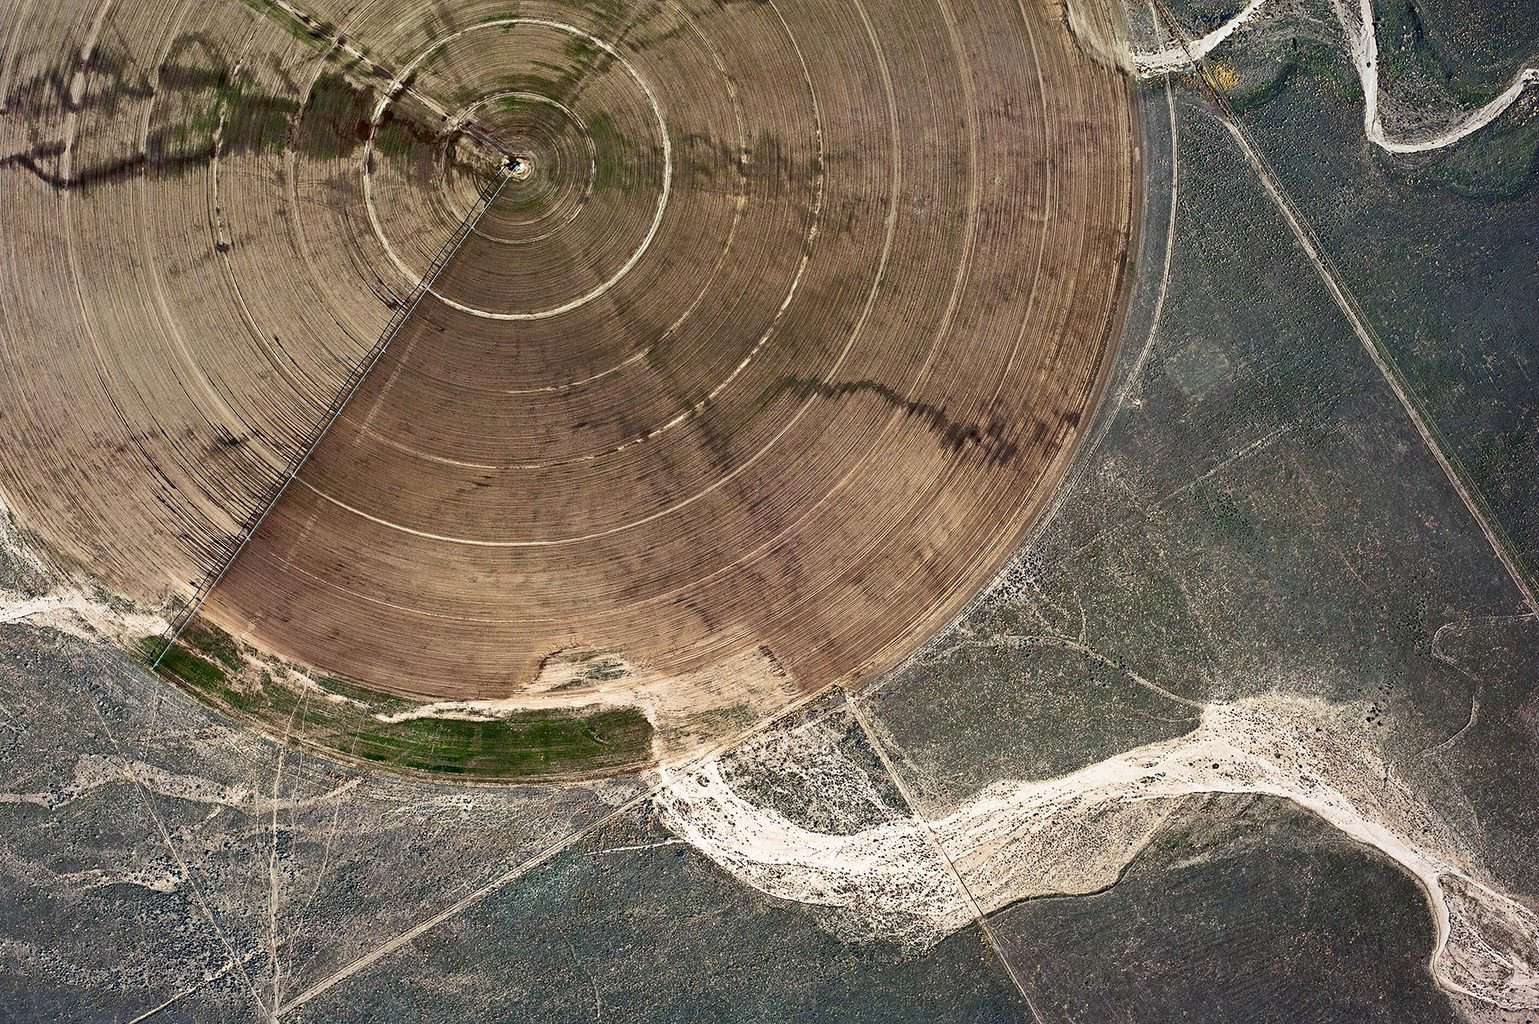 Agriculture #013, Mulholland's Gold, 2011-2014